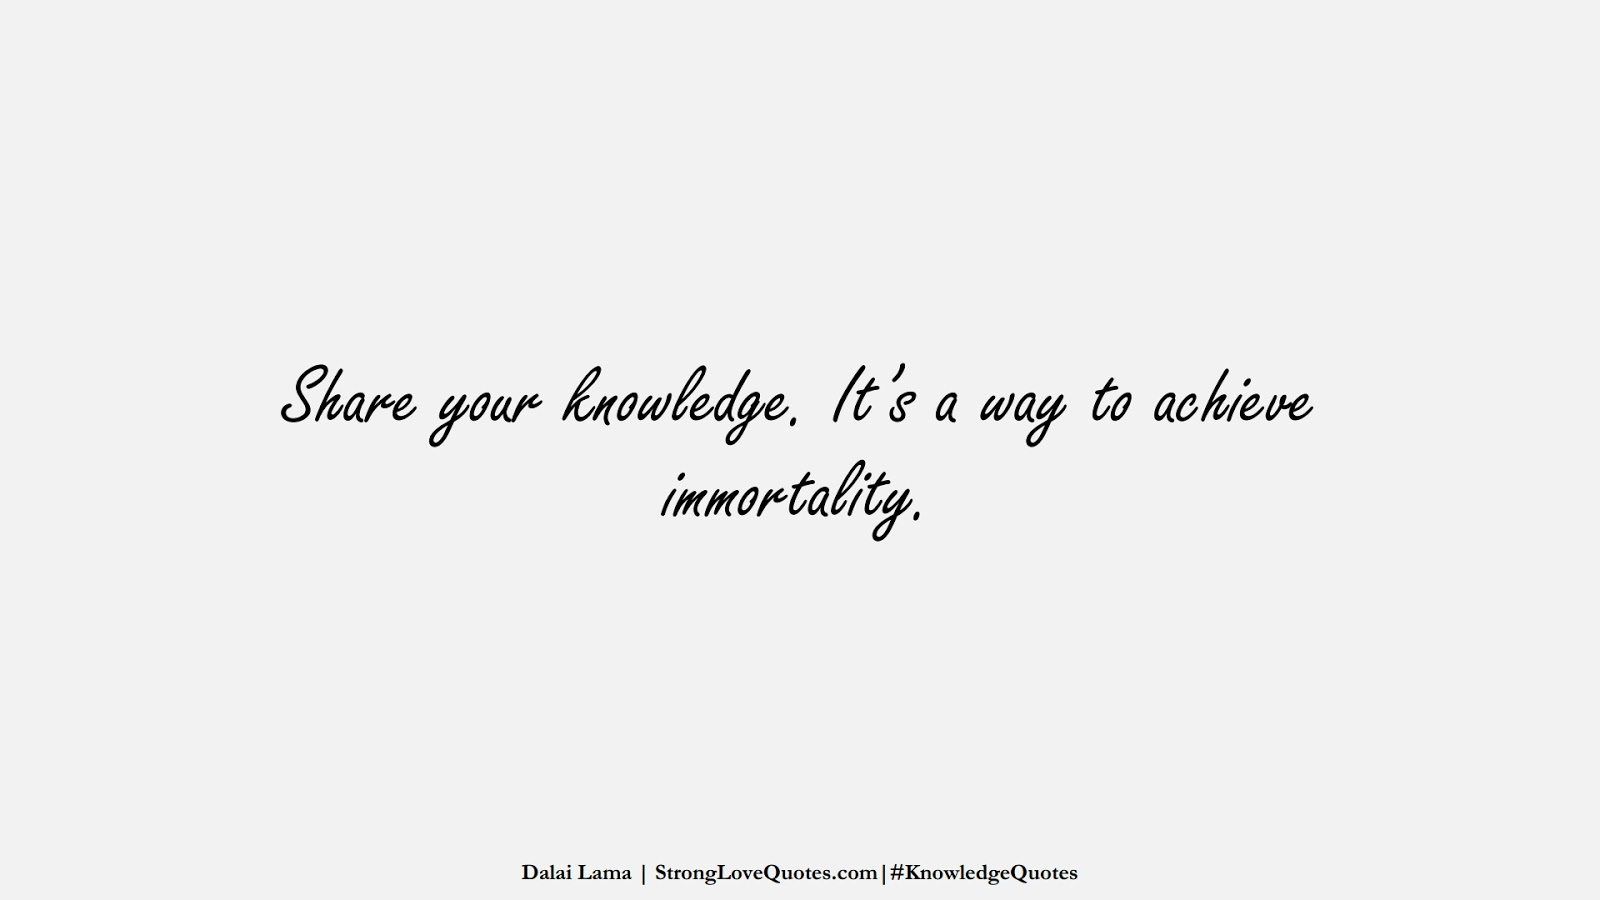 Share your knowledge. It's a way to achieve immortality. (Dalai Lama);  #KnowledgeQuotes